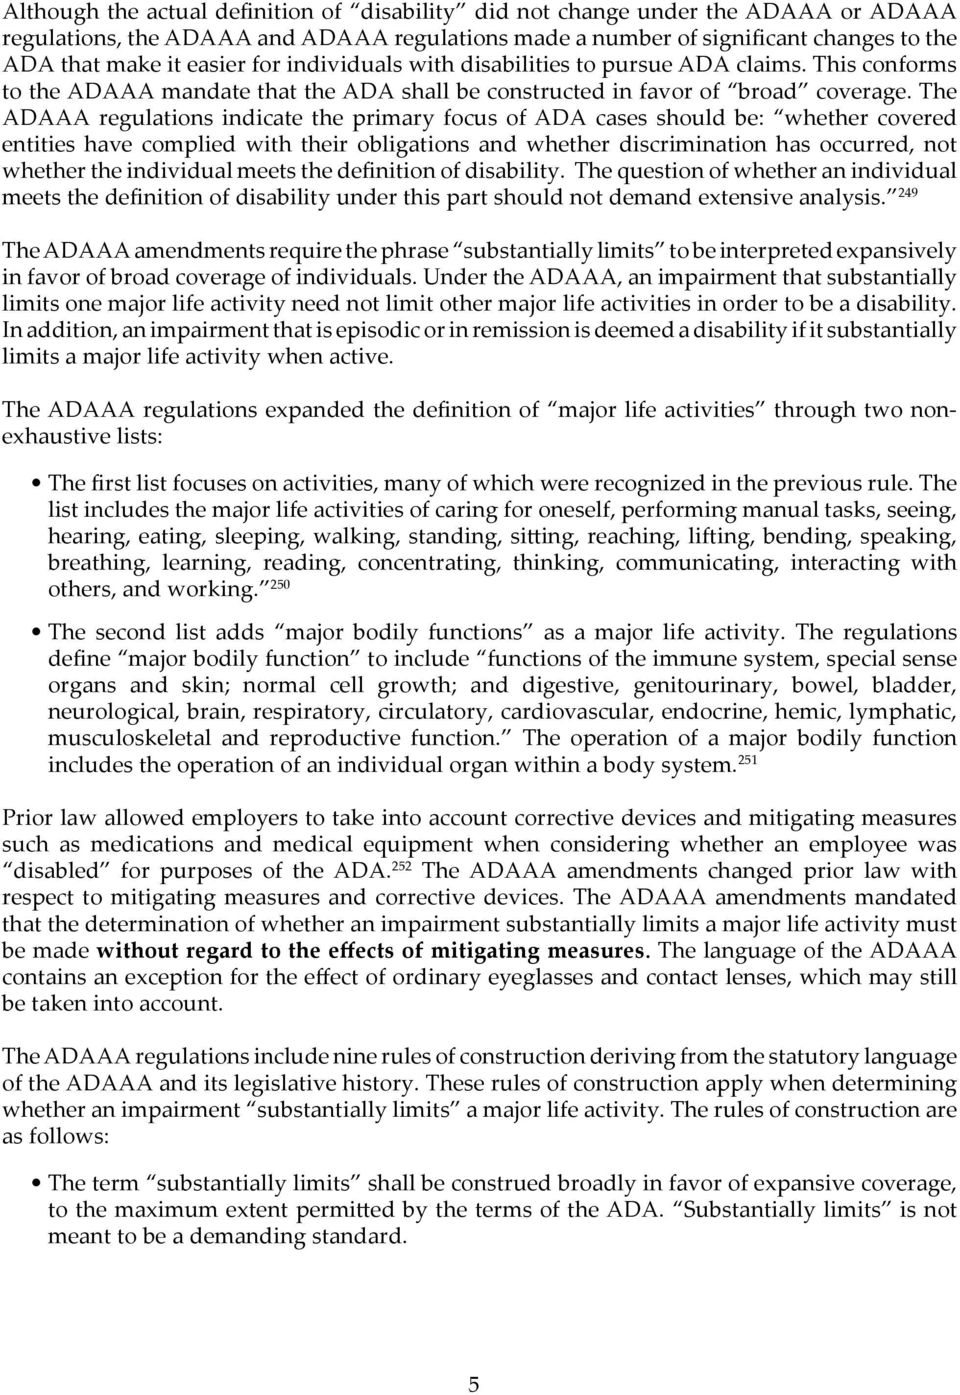 The ADAAA regulations indicate the primary focus of ADA cases should be: whether covered entities have complied with their obligations and whether discrimination has occurred, not whether the